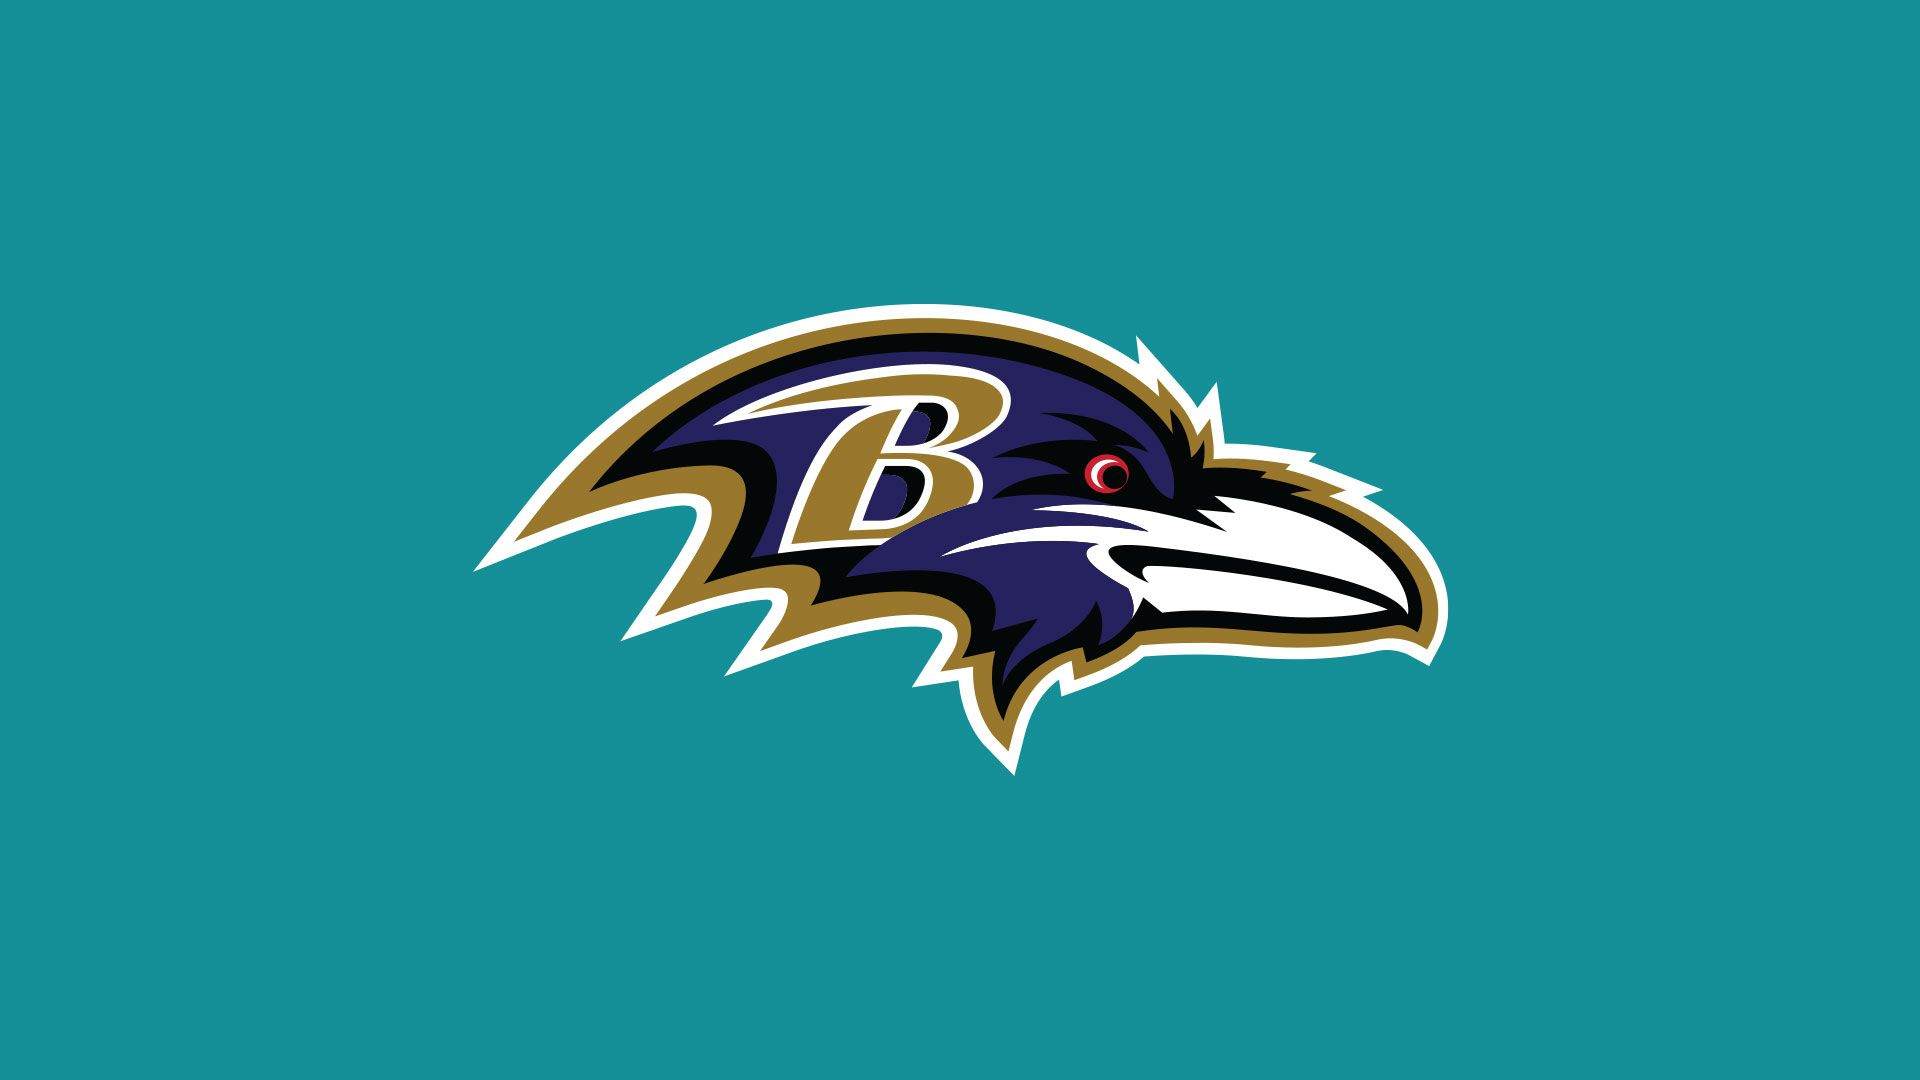 2021 Home Opponent: Baltimore Ravens